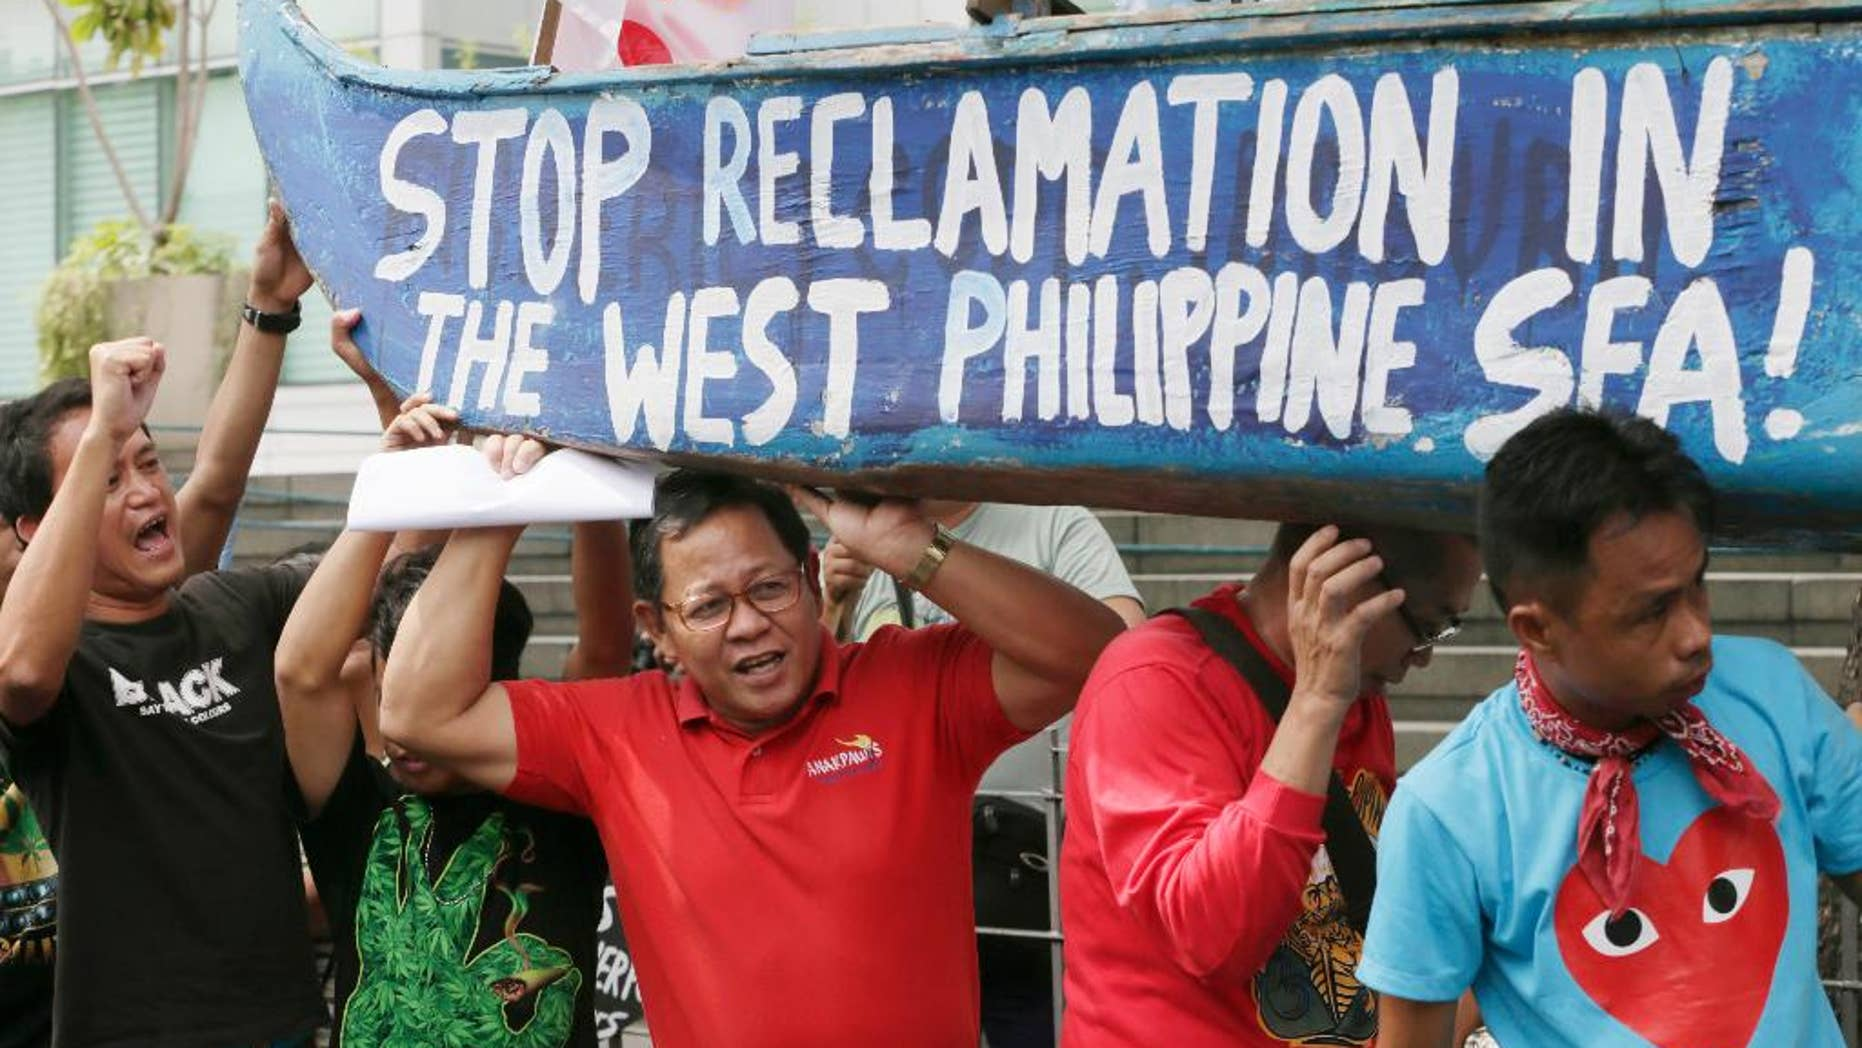 In this July 3, 2015, file photo, protesters carry a boat painted with slogans during a rally outside the Chinese Consulate at the financial district of Makati city, east of Manila, Philippines, to protest China's reclamations of disputed islands off South China Sea. China is standing pat on its decision to reject arbitration by an international tribunal that will begin formal hearings this week to resolve a long-seething feud with the Philippines over the South China Sea, Beijing's ambassador to Manila said Monday, July 6, 2015. (AP Photo/Bullit Marquez)